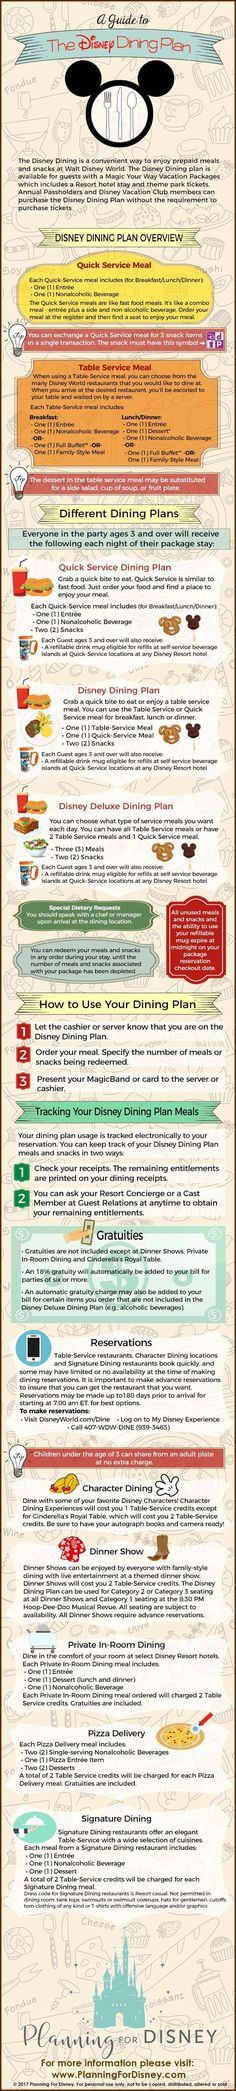 Disney Dining Plan Guide. Everything you need to know and more. Pin now and read later. Plan your perfect Disney vacation and know how the Disney Dining Plan works.� Planning For Disney